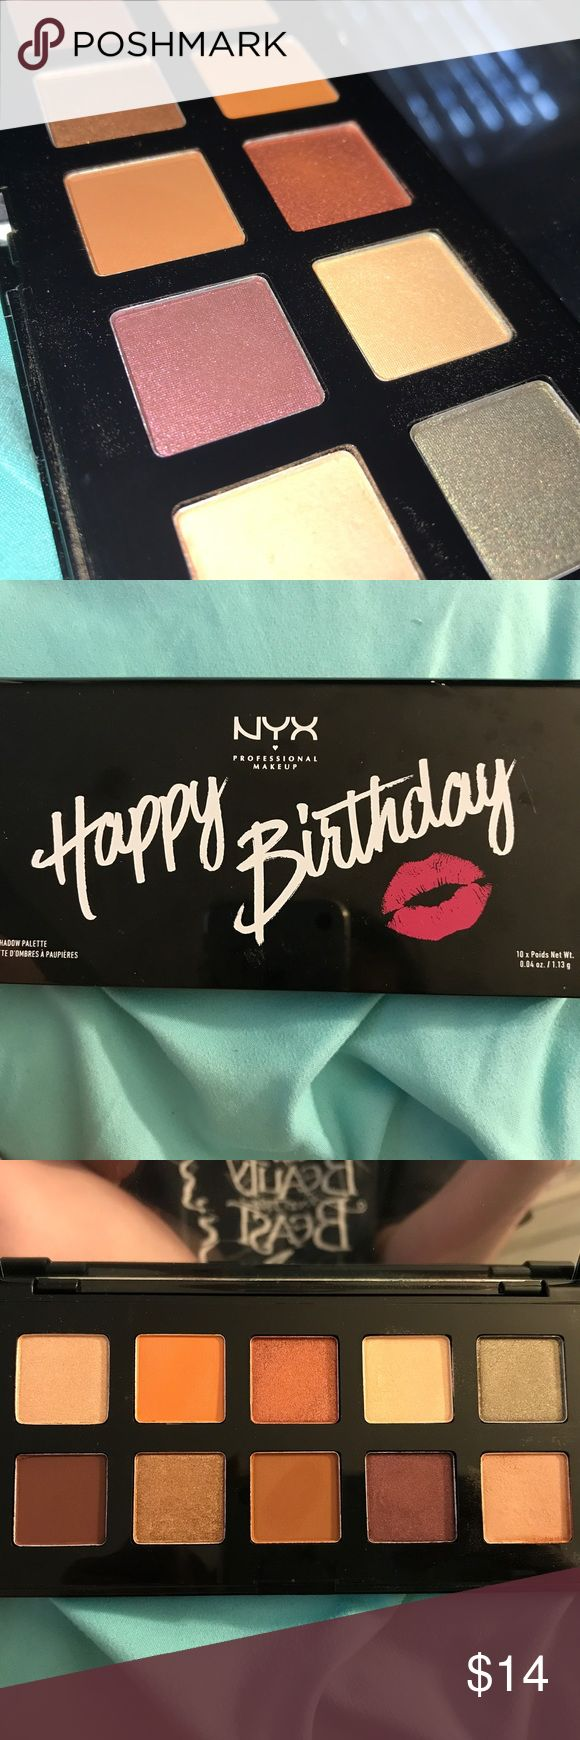 NYX Happy Birthday Makeup Palette A beautiful palette from NYX. Has both matte and shimmery pigments, but they are all warm-toned. Great for fall makeup!  Used only once for swatches. Retail price is $19. NYX Cosmetics Makeup Eyeshadow